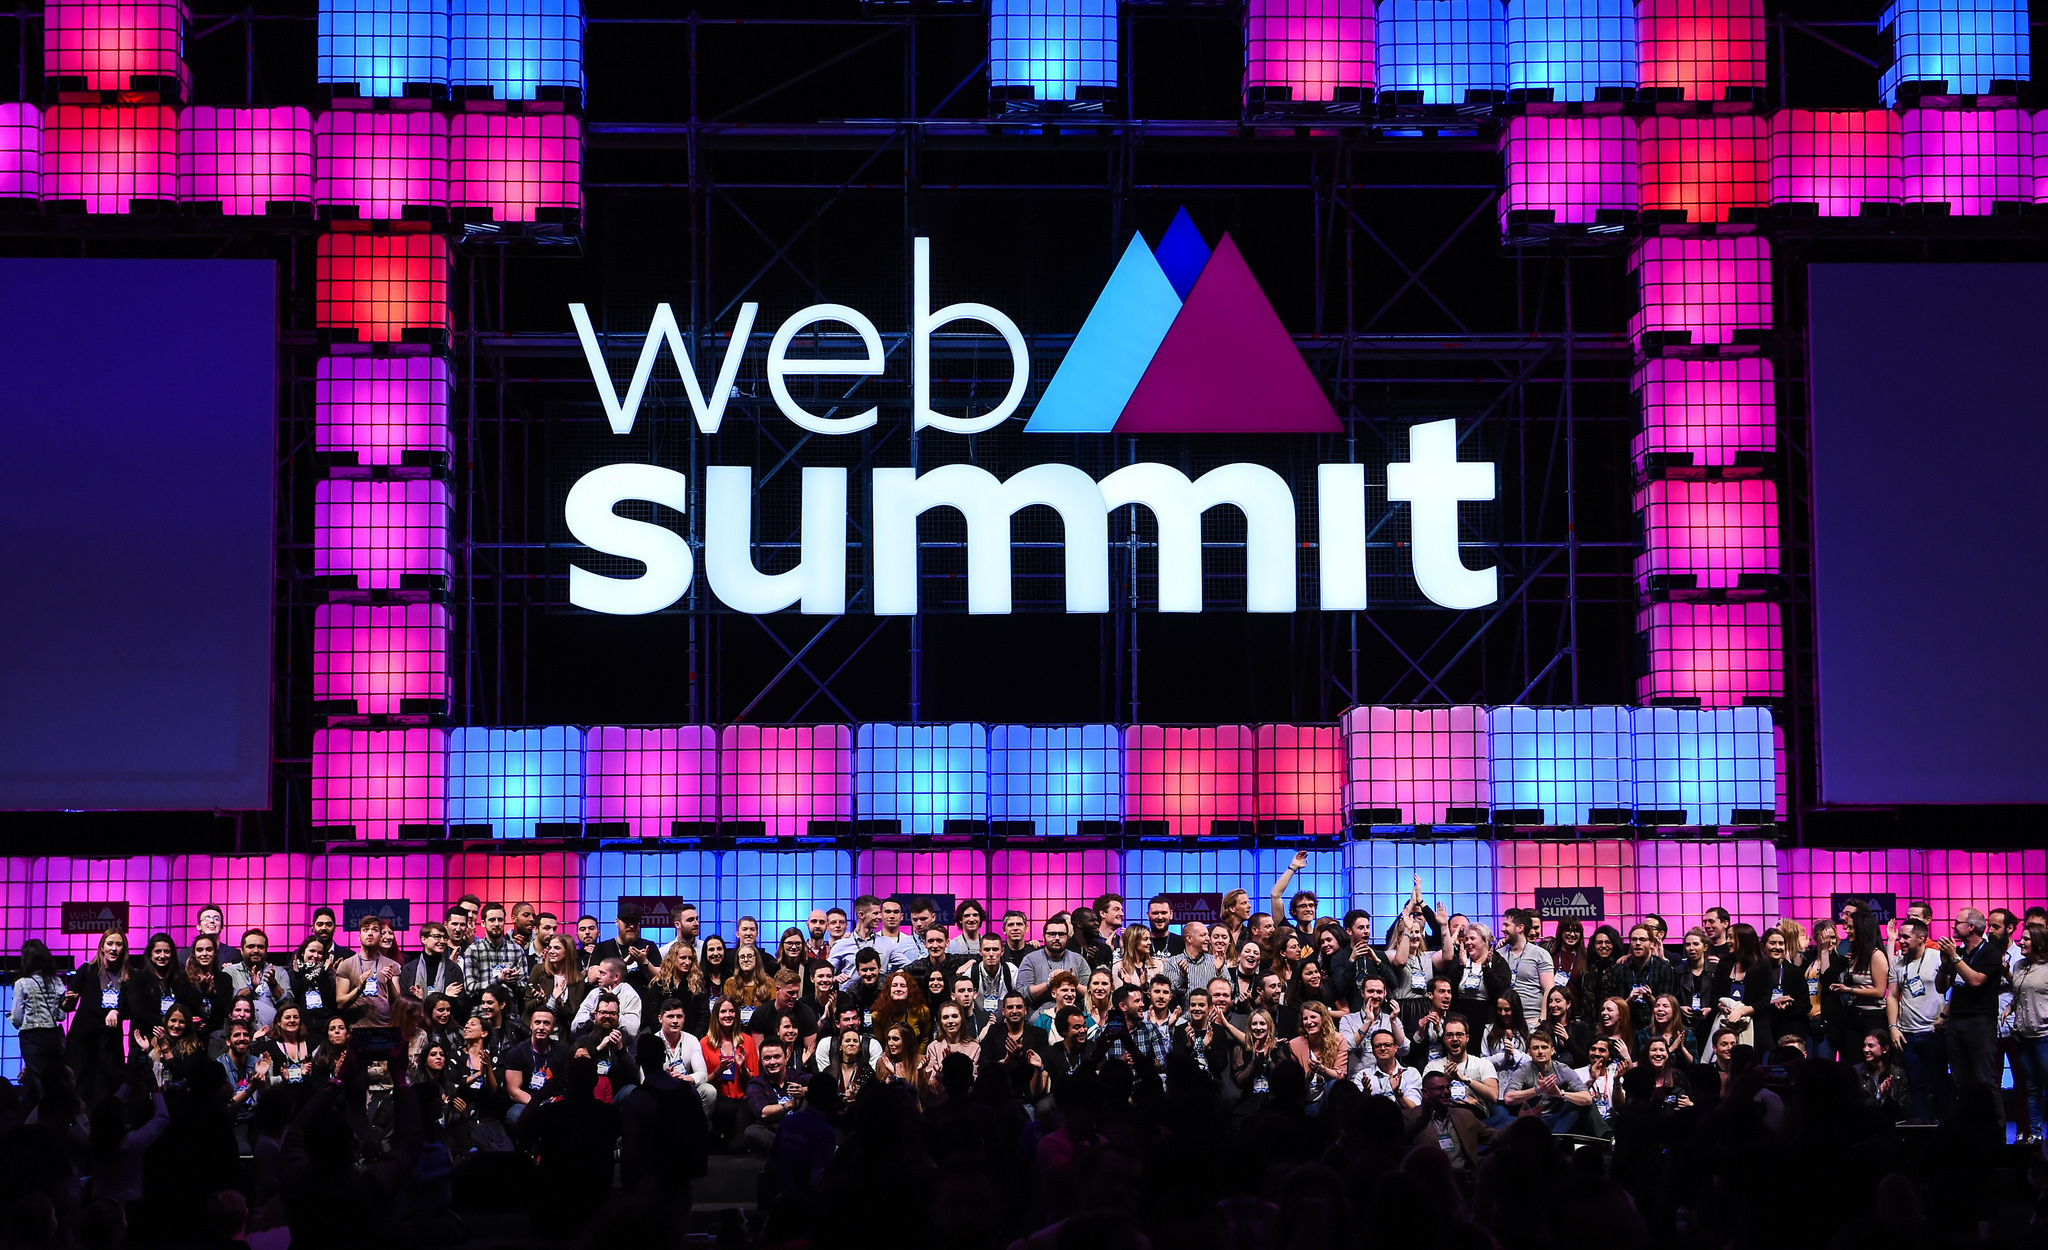 ¡Web Summit 2018 allá vamos!